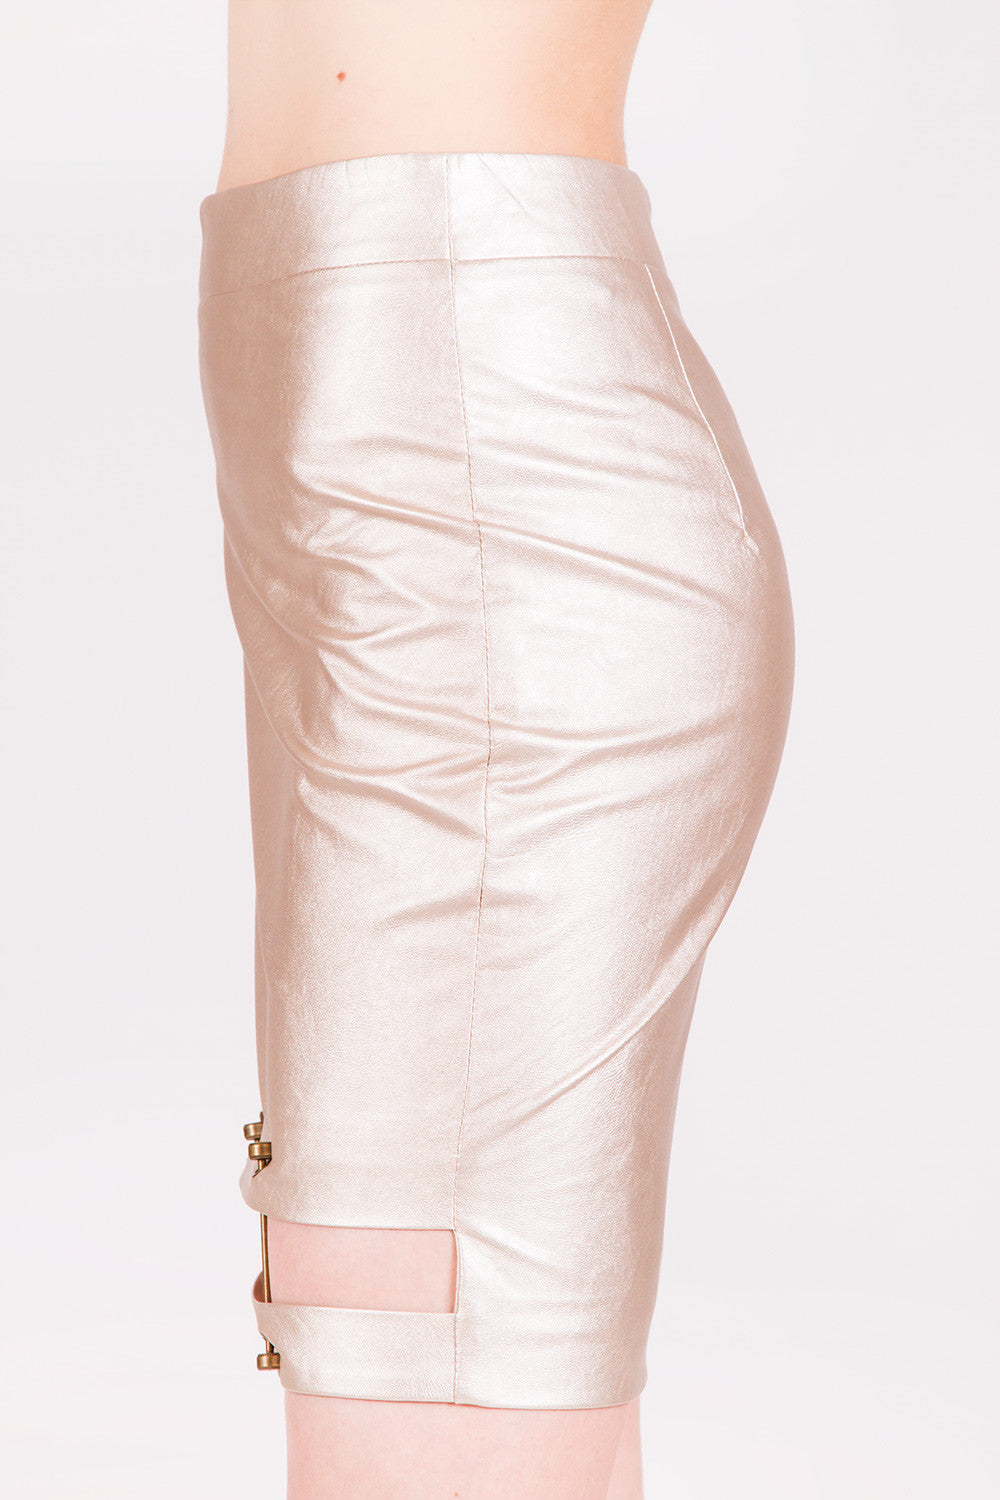 Rihanna Rose Gold Skirt